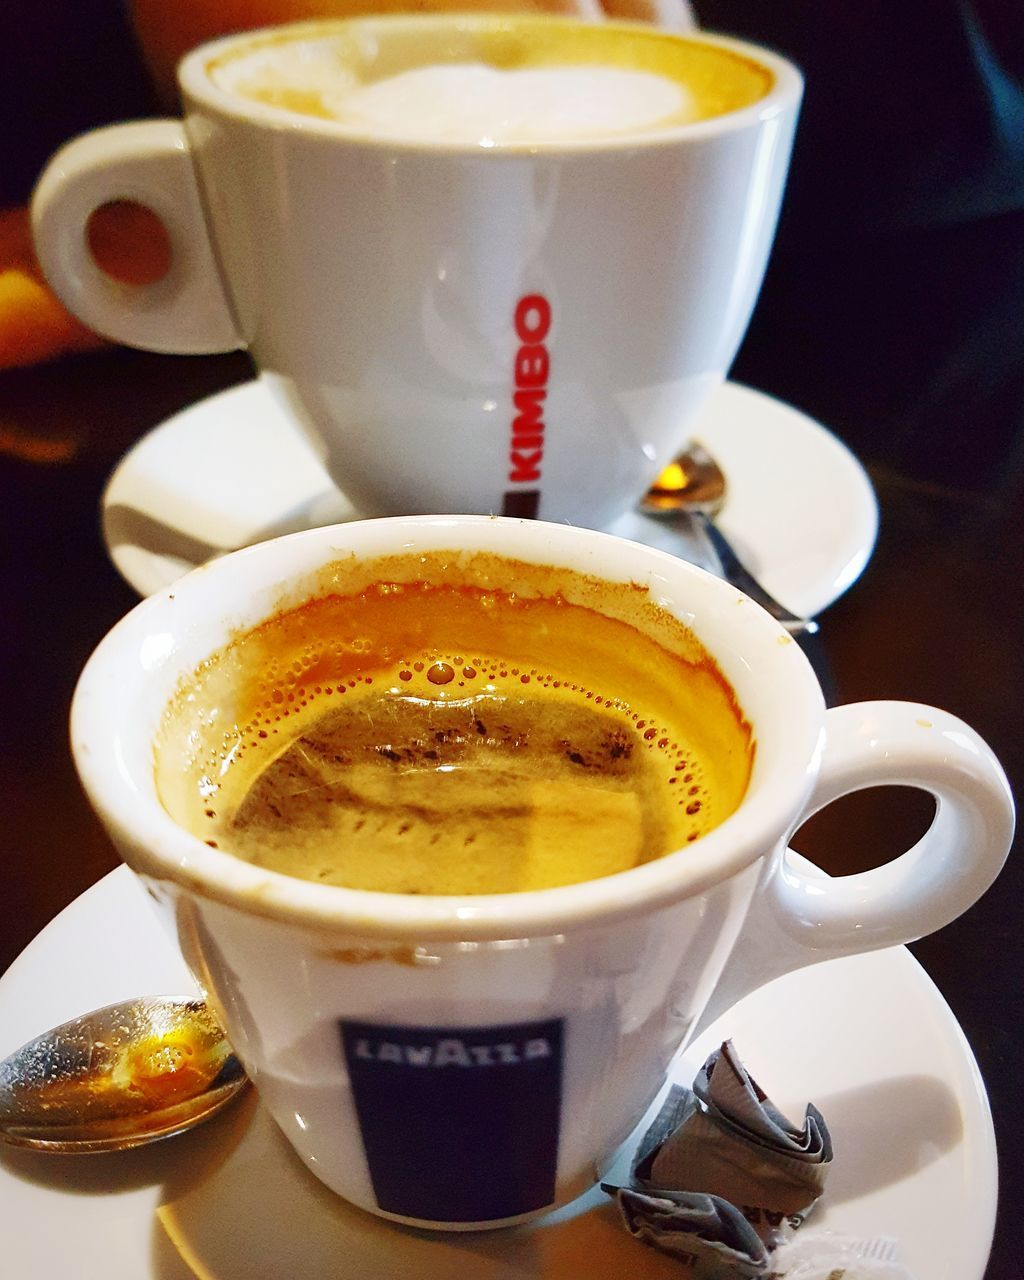 coffee cup, drink, coffee - drink, food and drink, refreshment, cup, freshness, table, saucer, frothy drink, serving size, food, beverage, no people, close-up, indoors, cappuccino, healthy eating, sweet food, tea - hot drink, ready-to-eat, froth art, mocha, day